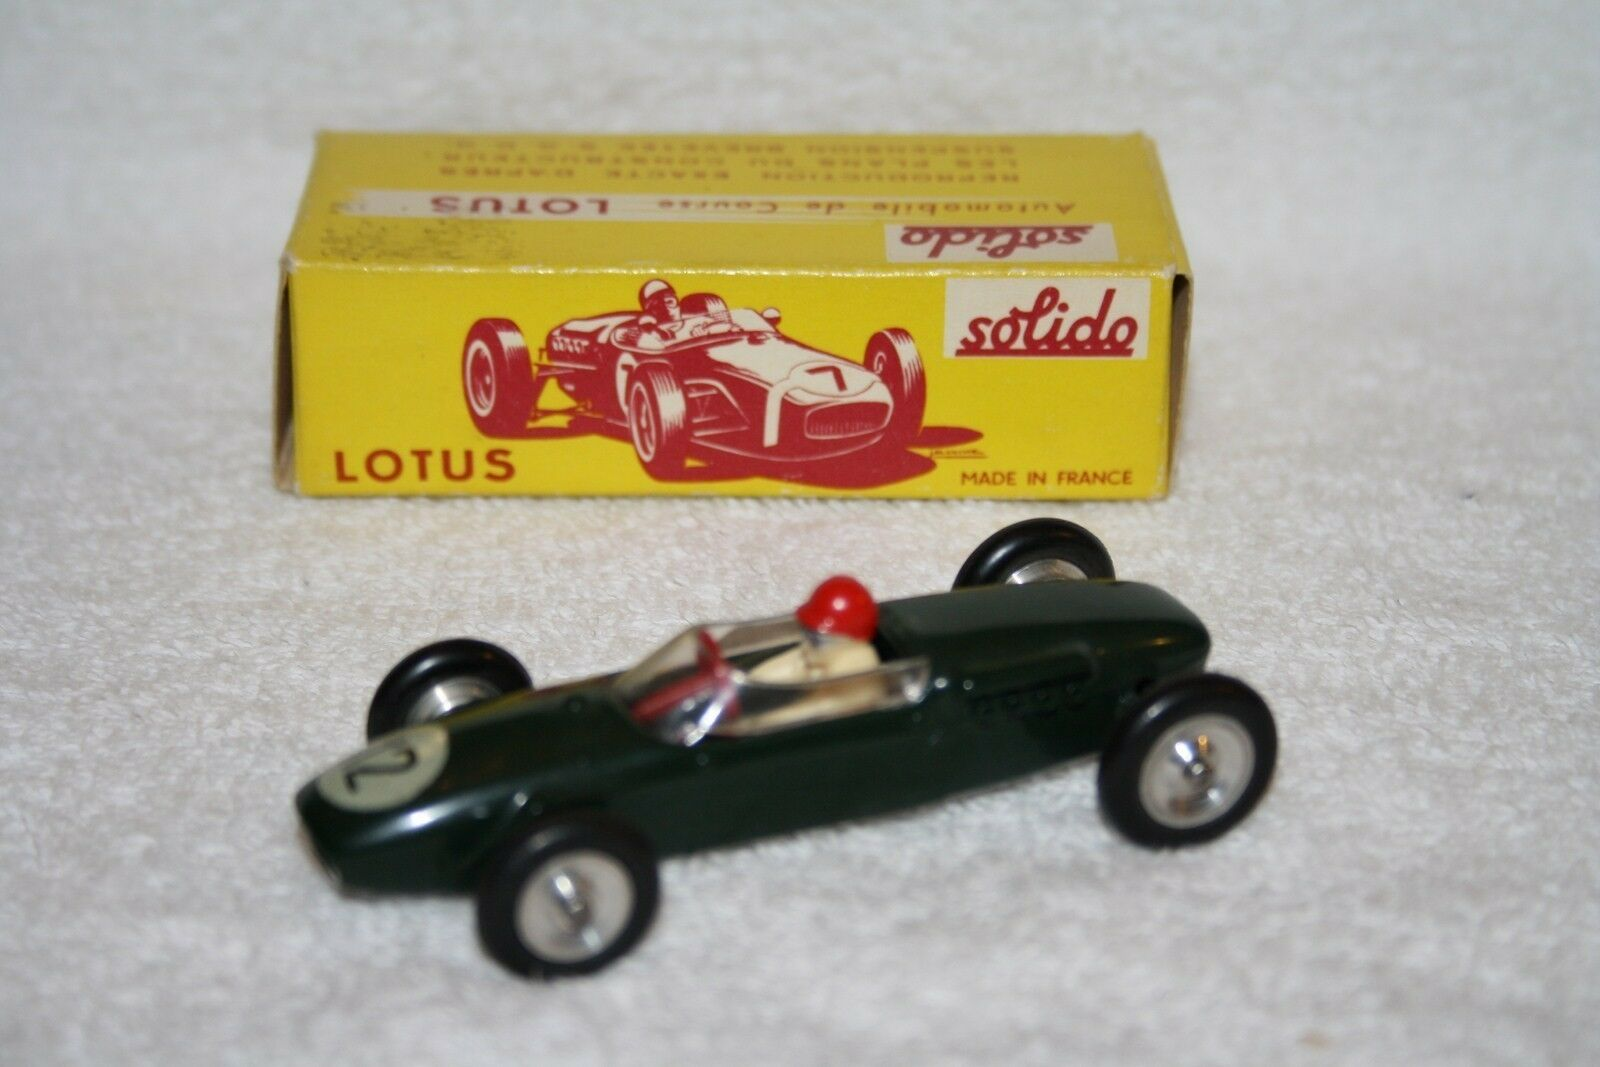 SOLIDO SERIE 100 118 LOTUS F1 RACING CAR MINT BOXED RARE SELTEN